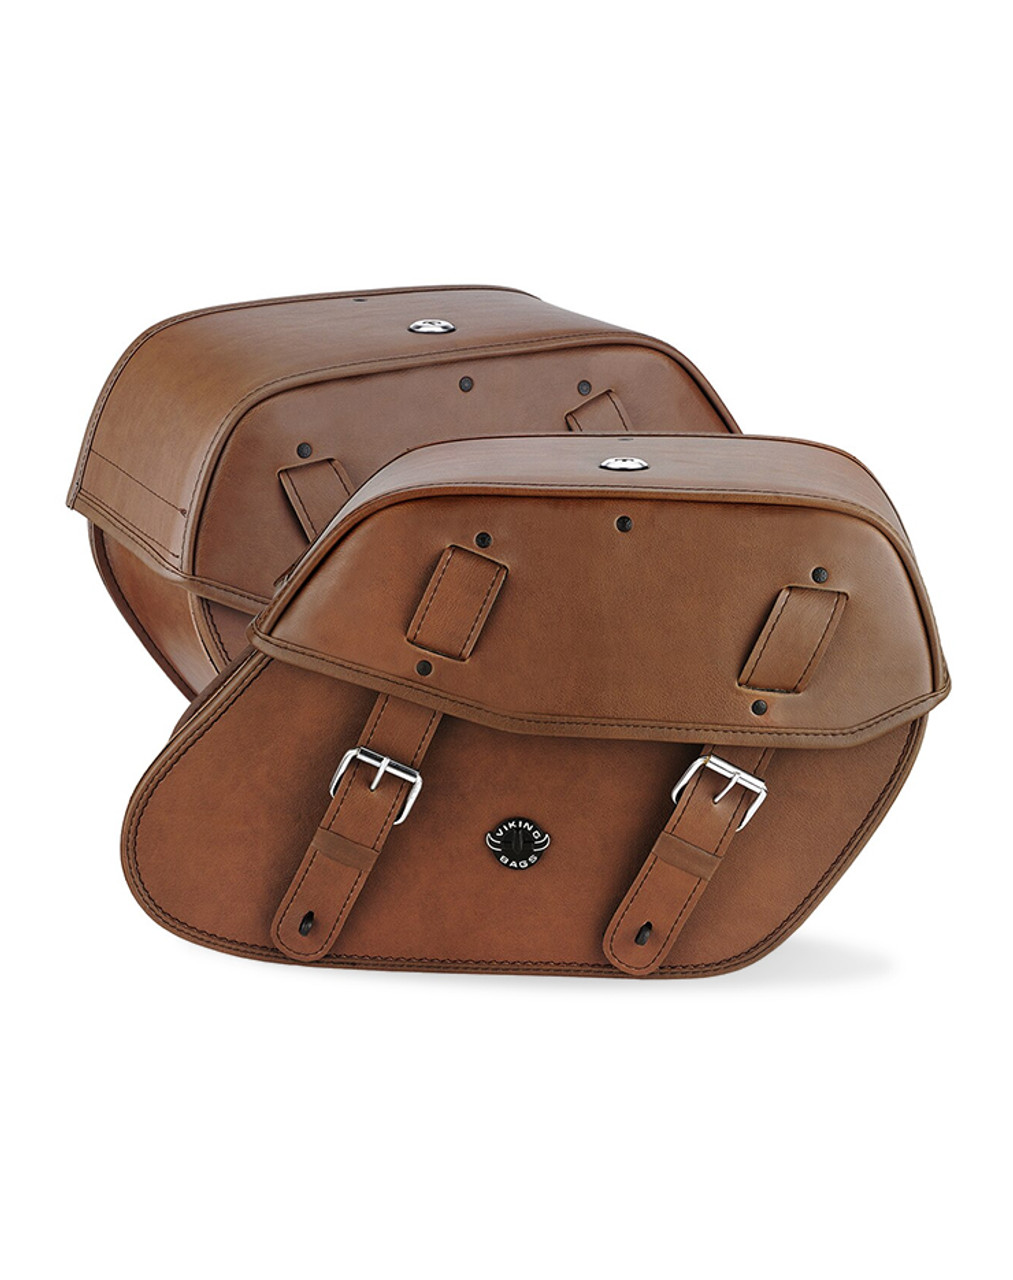 VikingBags Odin Brown Medium Double Strap Leather Motorcycle Saddlebags For Harley Softail Low Rider S FXLRS Both bags View